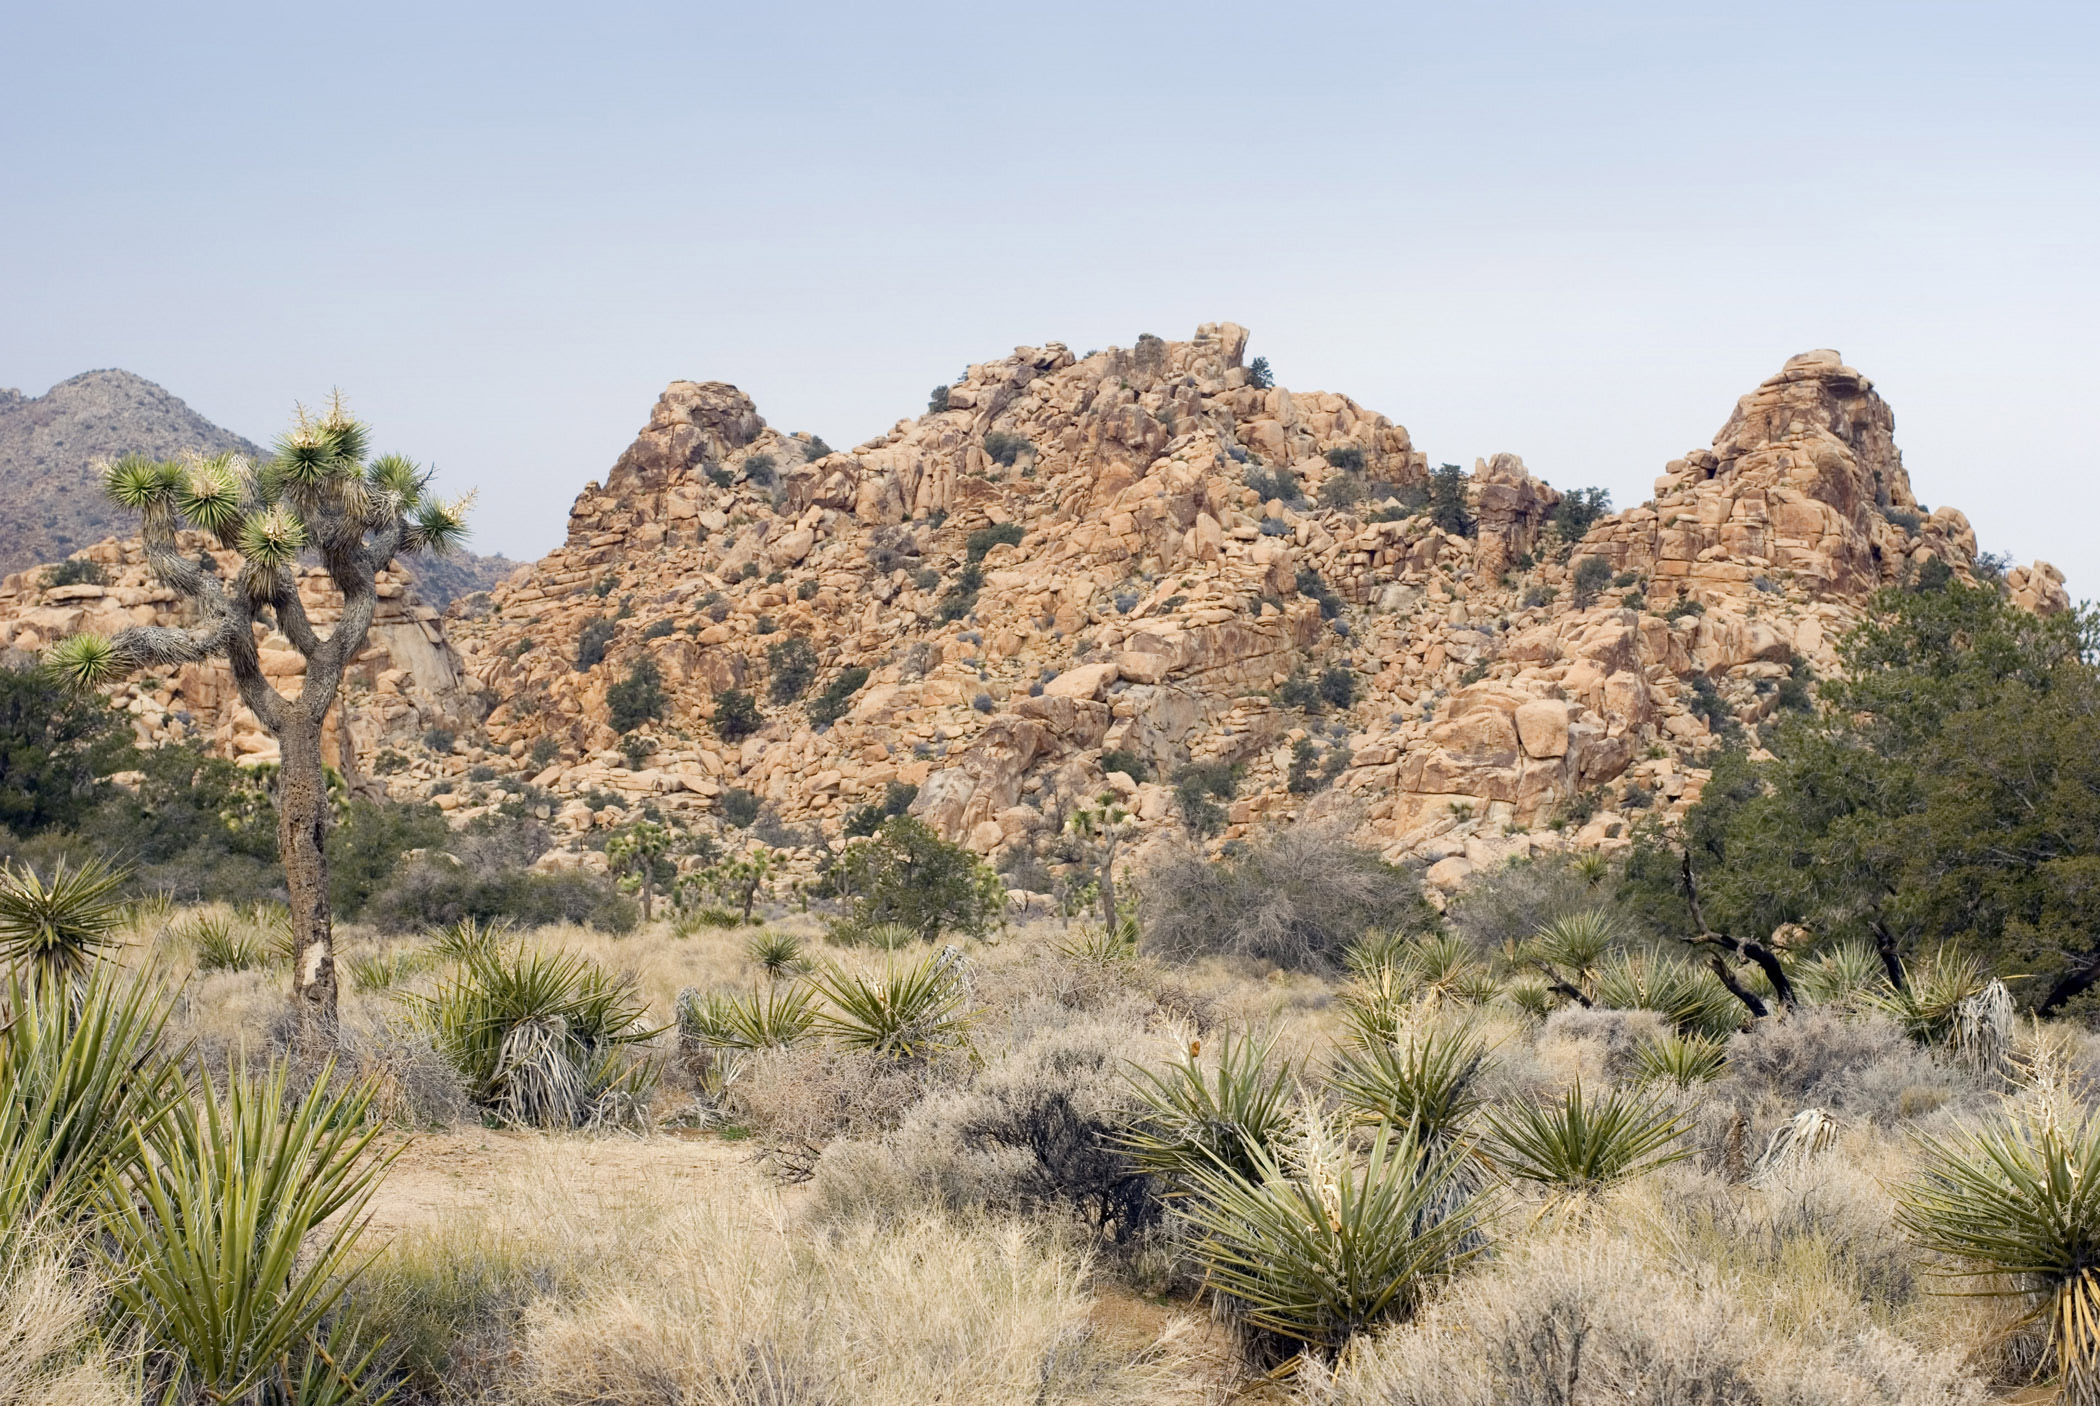 Mountainous arid landscape in Joshua Tree National Park in south eastern California with its dessert ecosystems